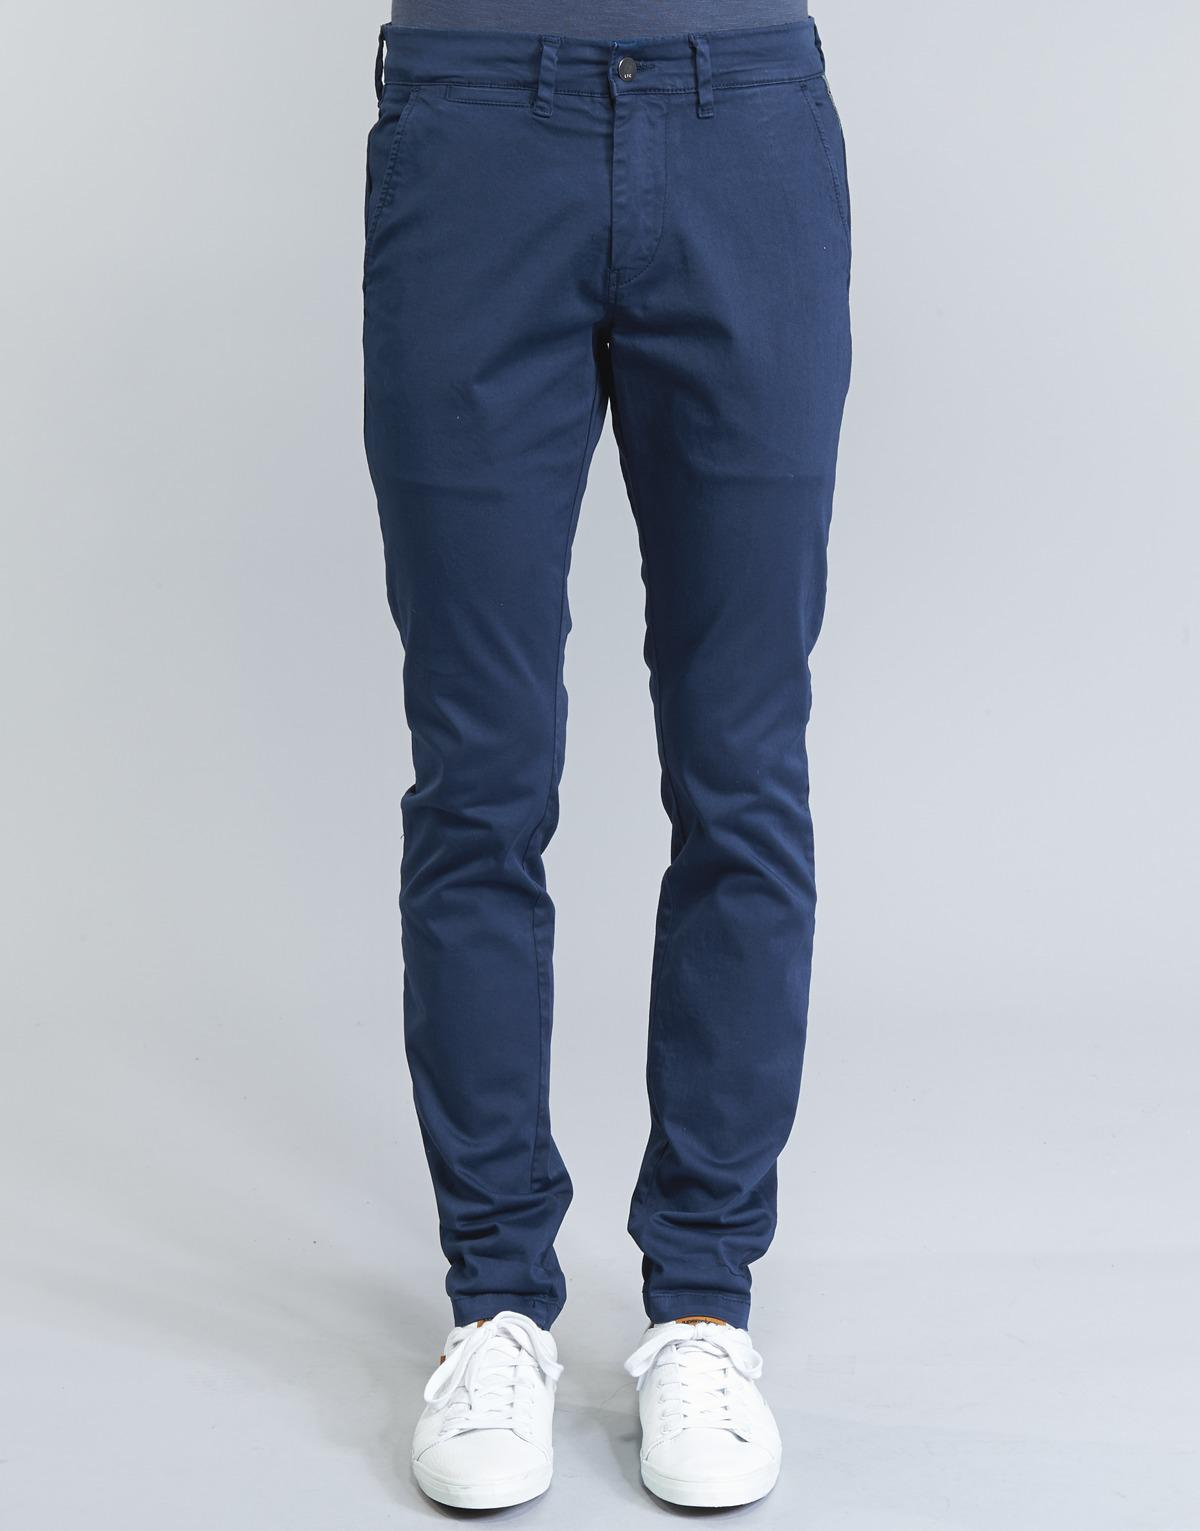 Le Temps Des Cerises Cotton Ond Trousers in Blue for Men